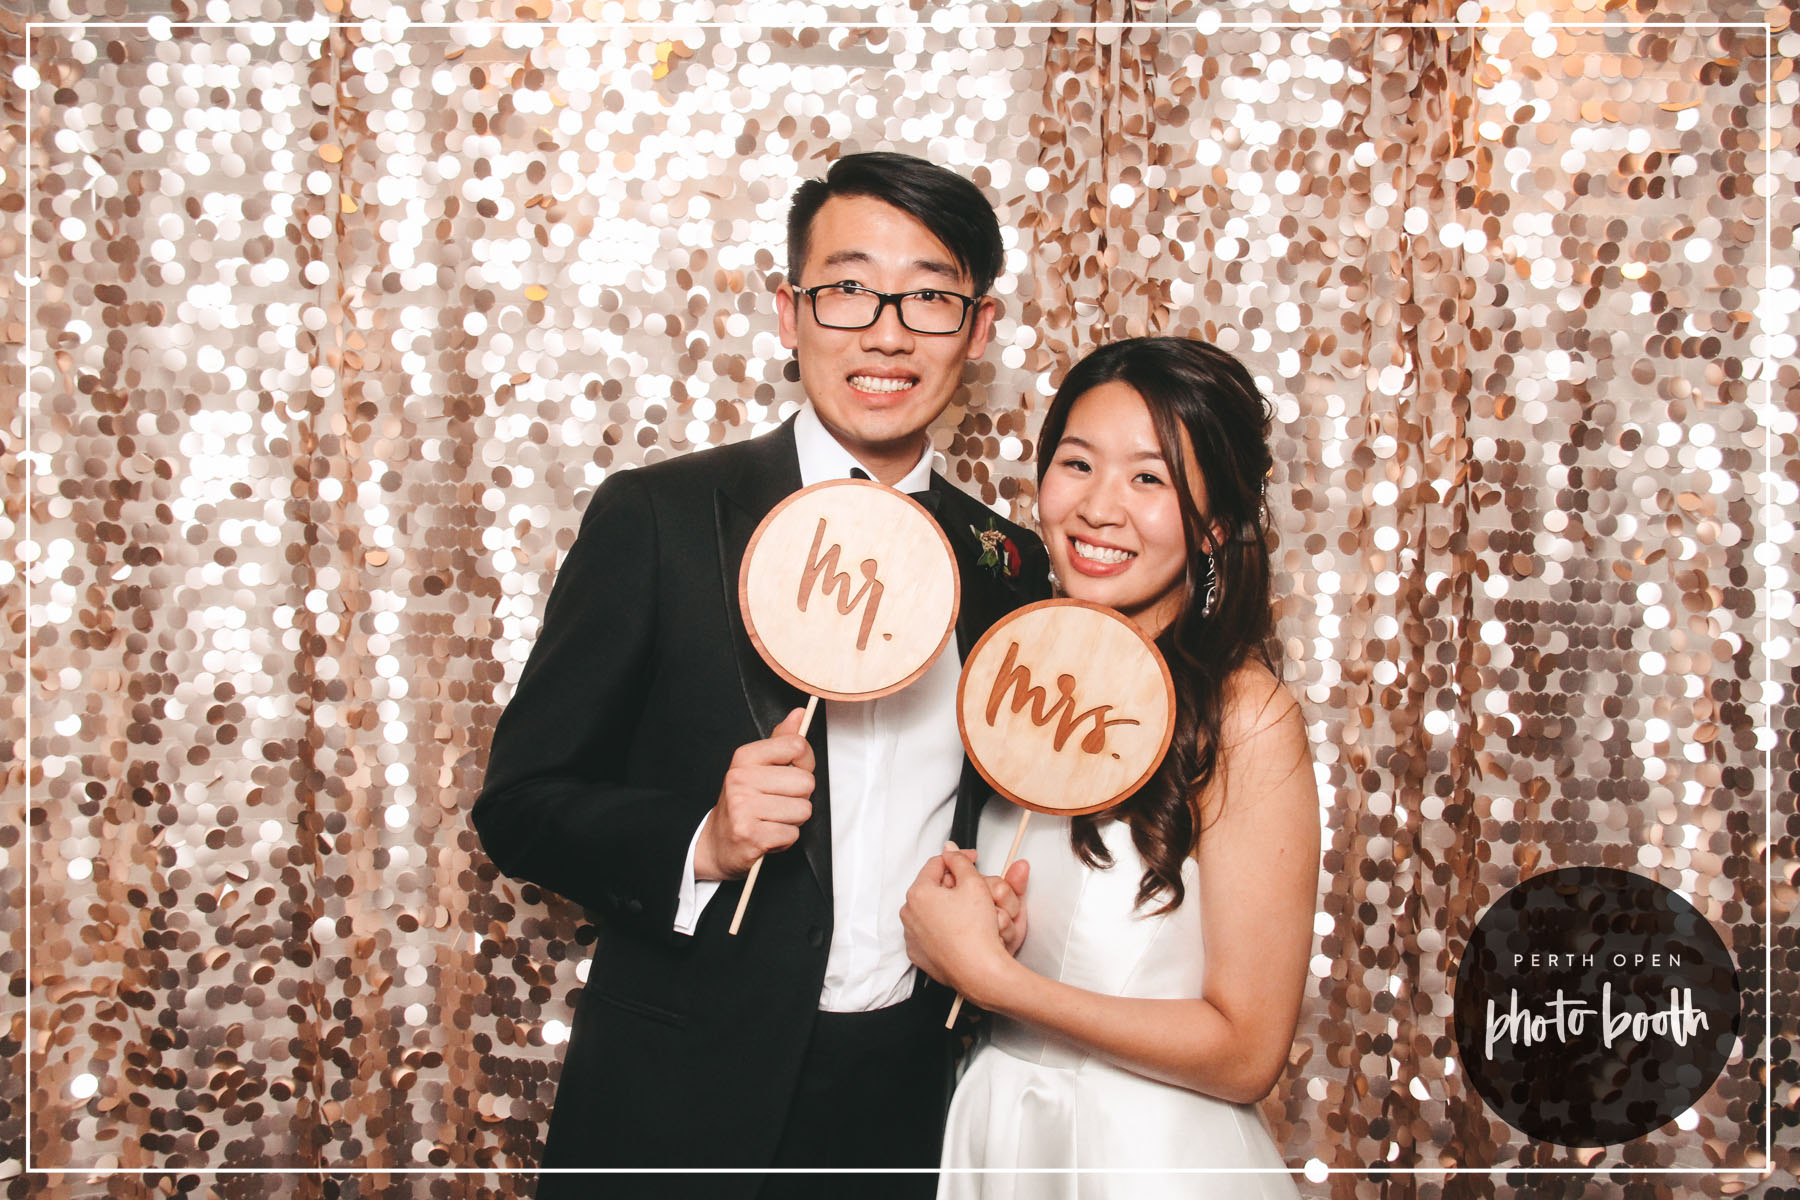 Alicia + Peiran'S WEDDING - Password provided on the night- All lowercase -